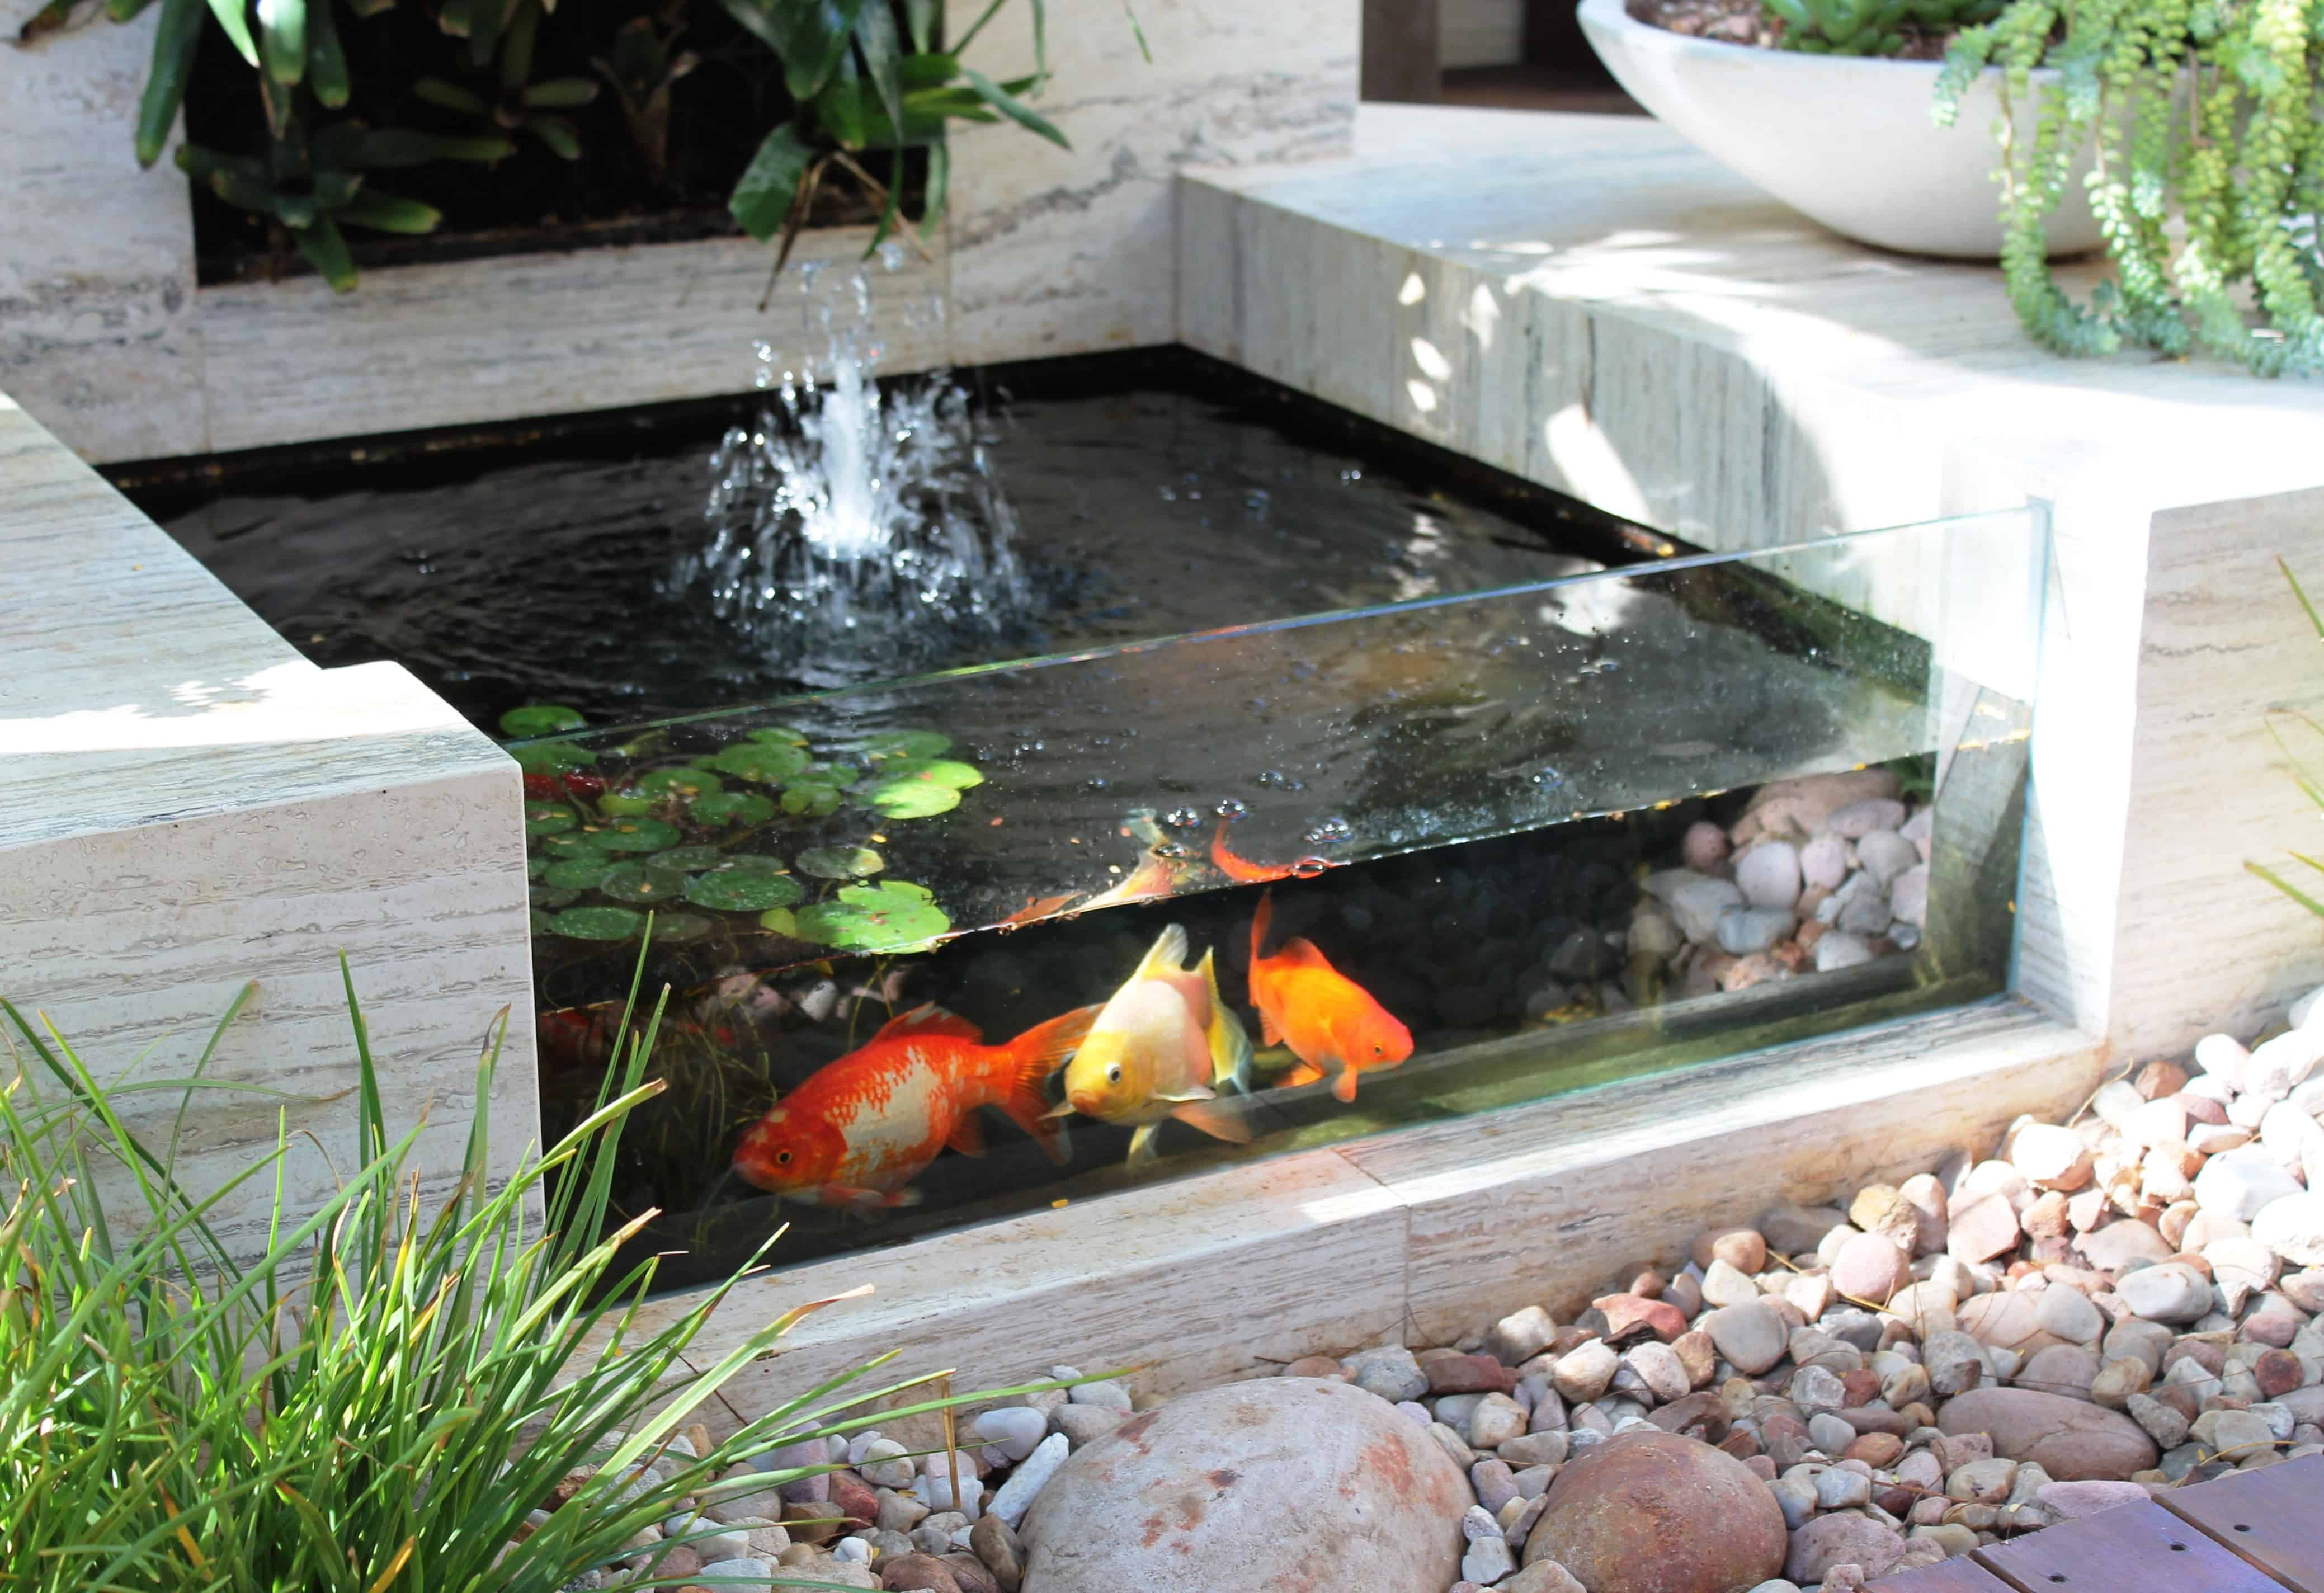 35 Sublime Koi Pond Designs and Water Garden Ideas for ... on Koi Ponds Ideas  id=77003